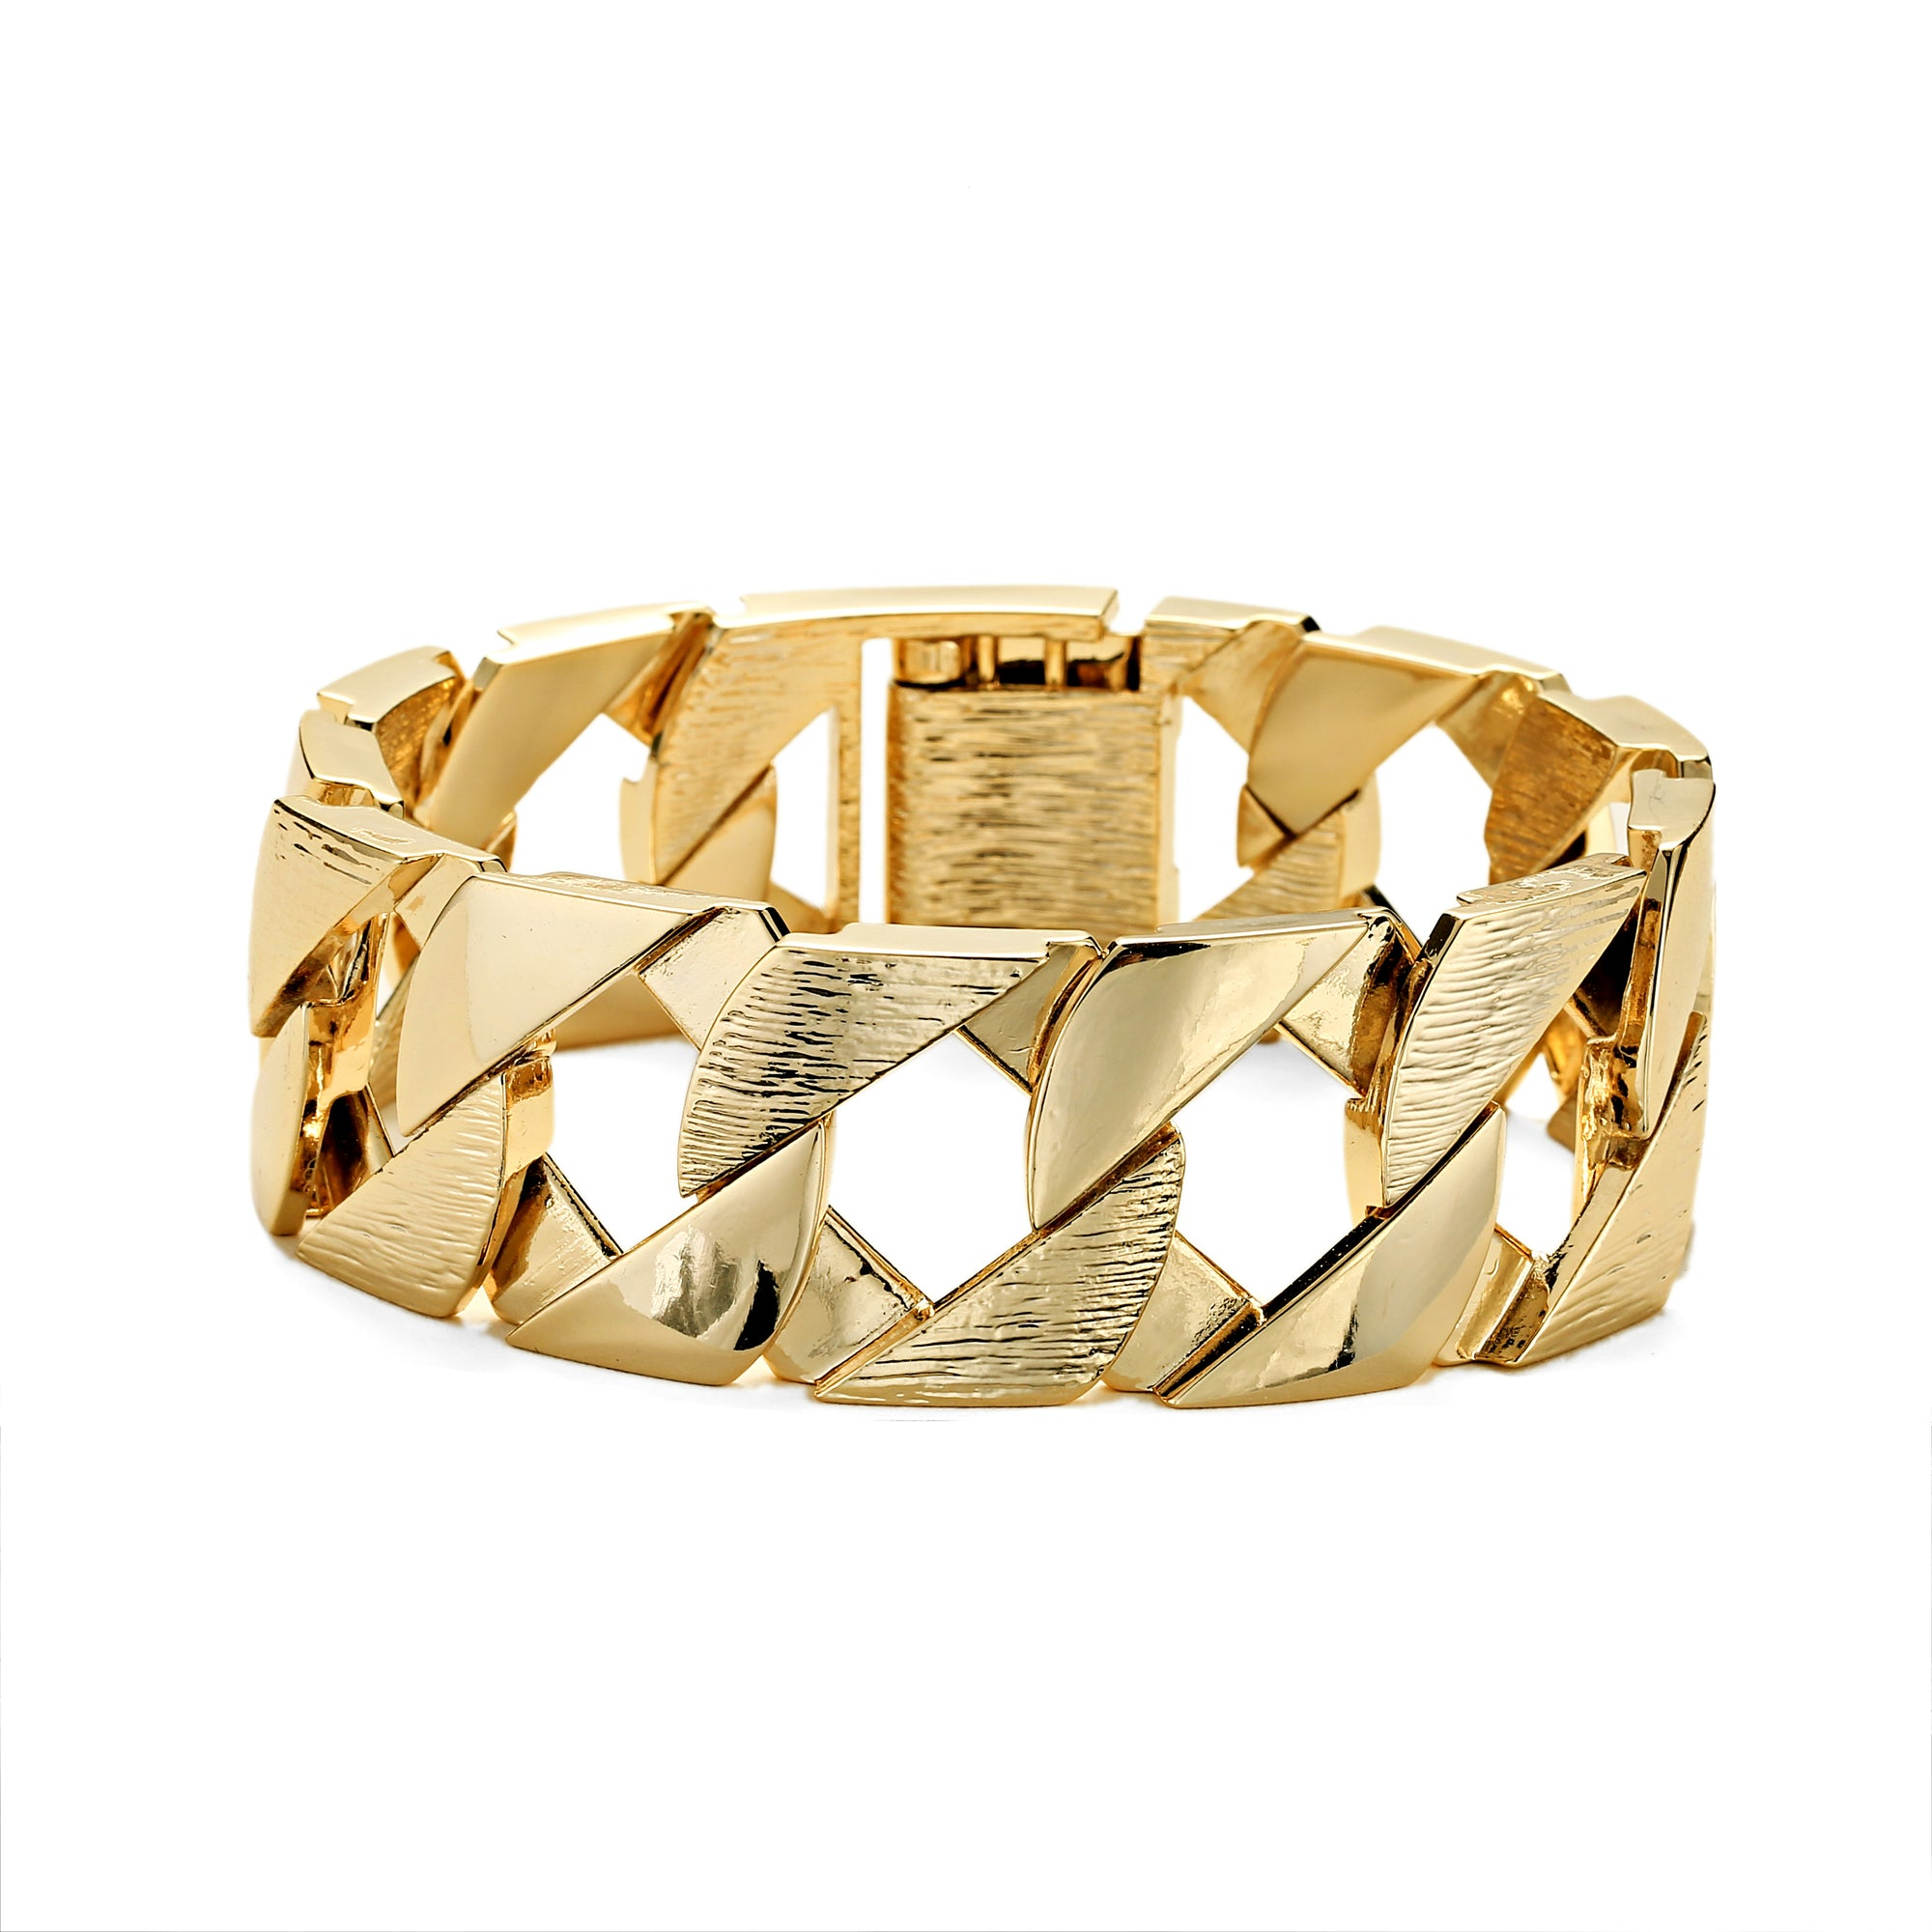 27mm Gold Bark Cuban Bracelet